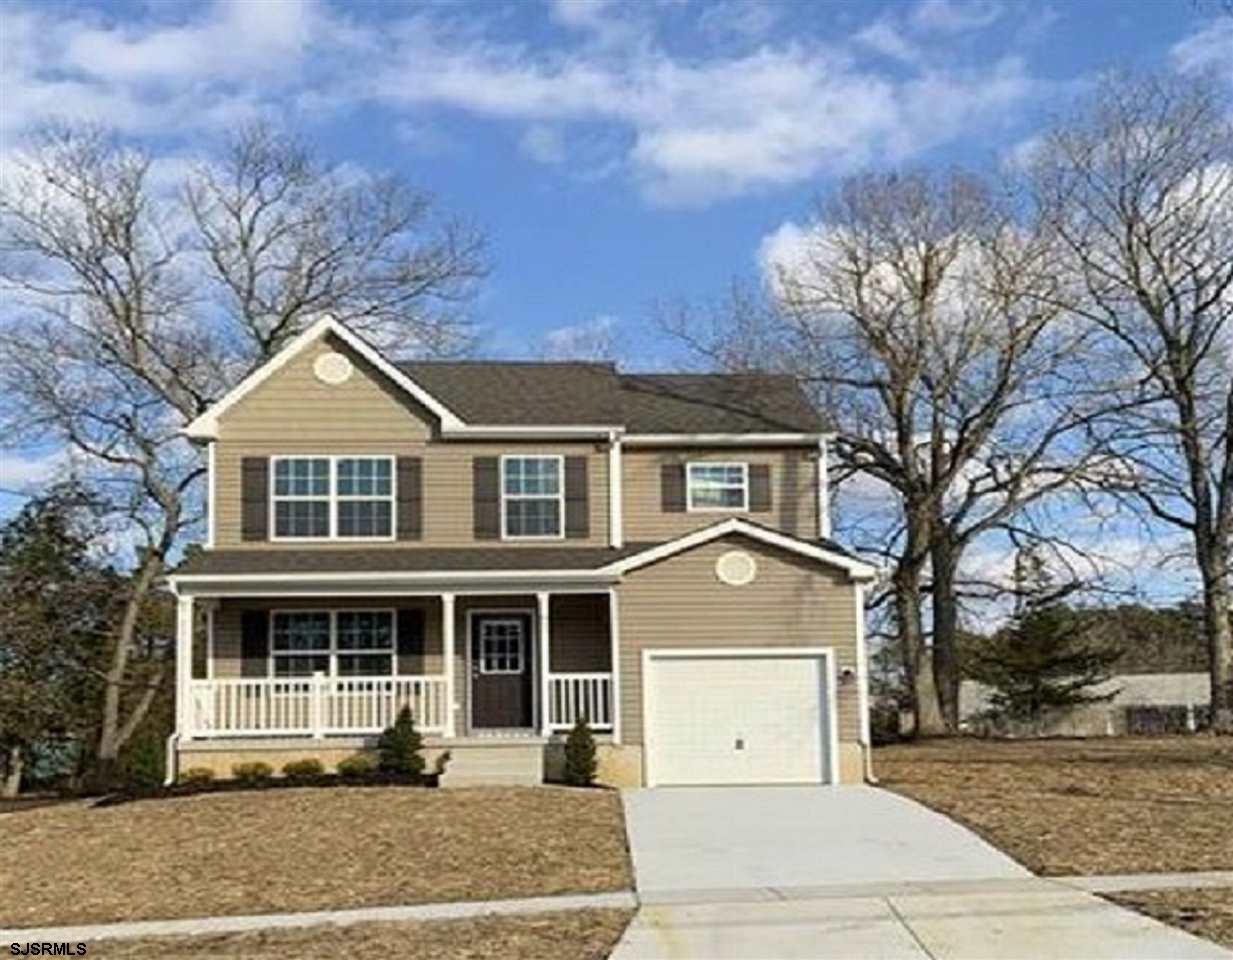 NEW CONSTRUCTION IN NORTHFIELD!  BEAUTIFUL NEW 3 BEDROOM AND 2.5 BATH NEW LUXURY HOME ON LARGE HOMES